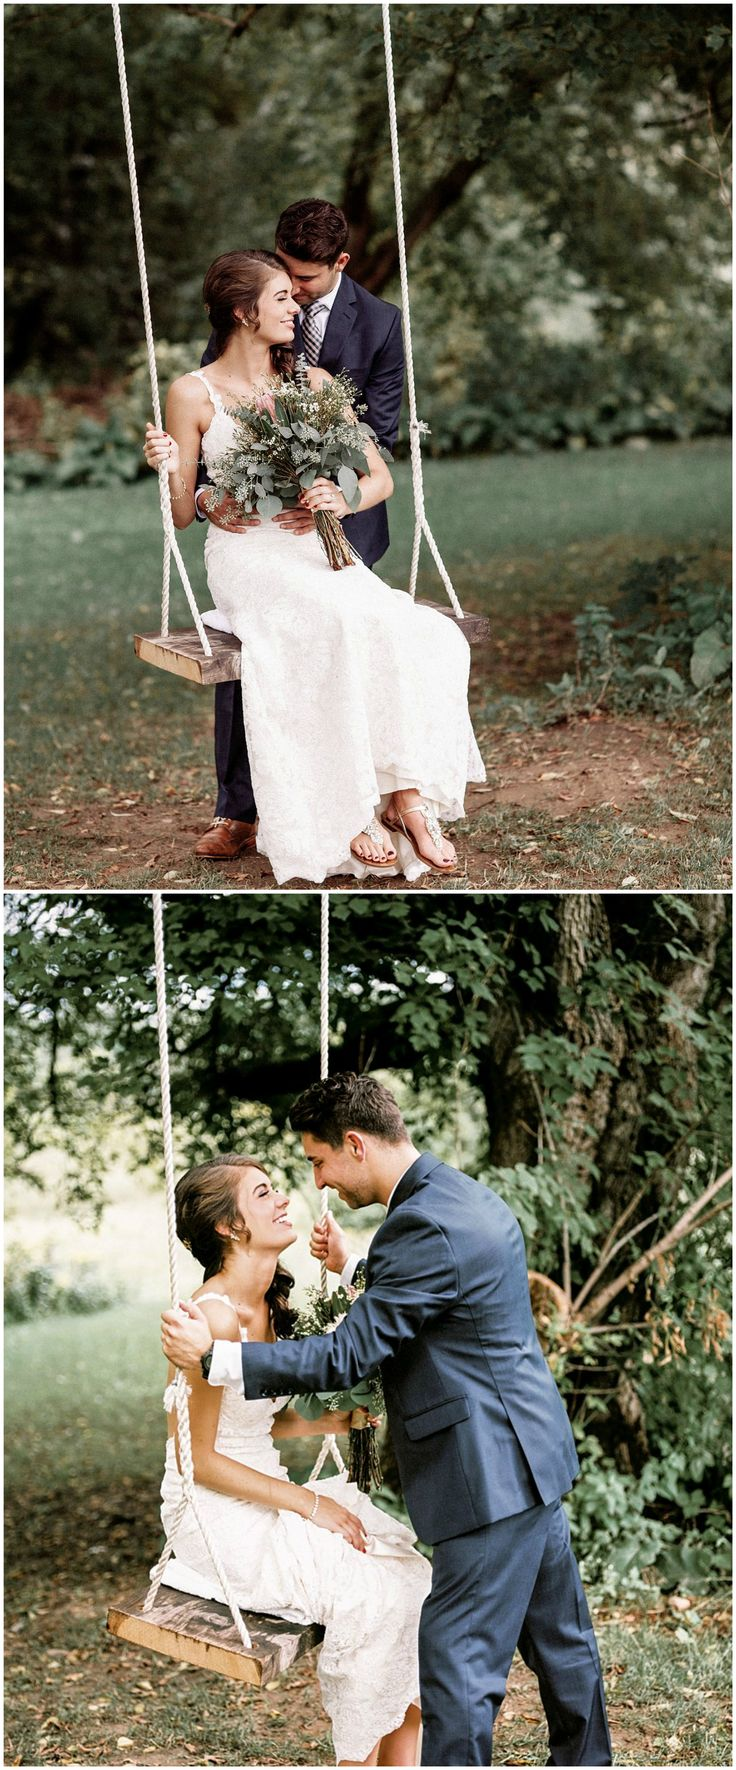 Rope swing, wedding photography, posing ideas // Marc Andreo Photography